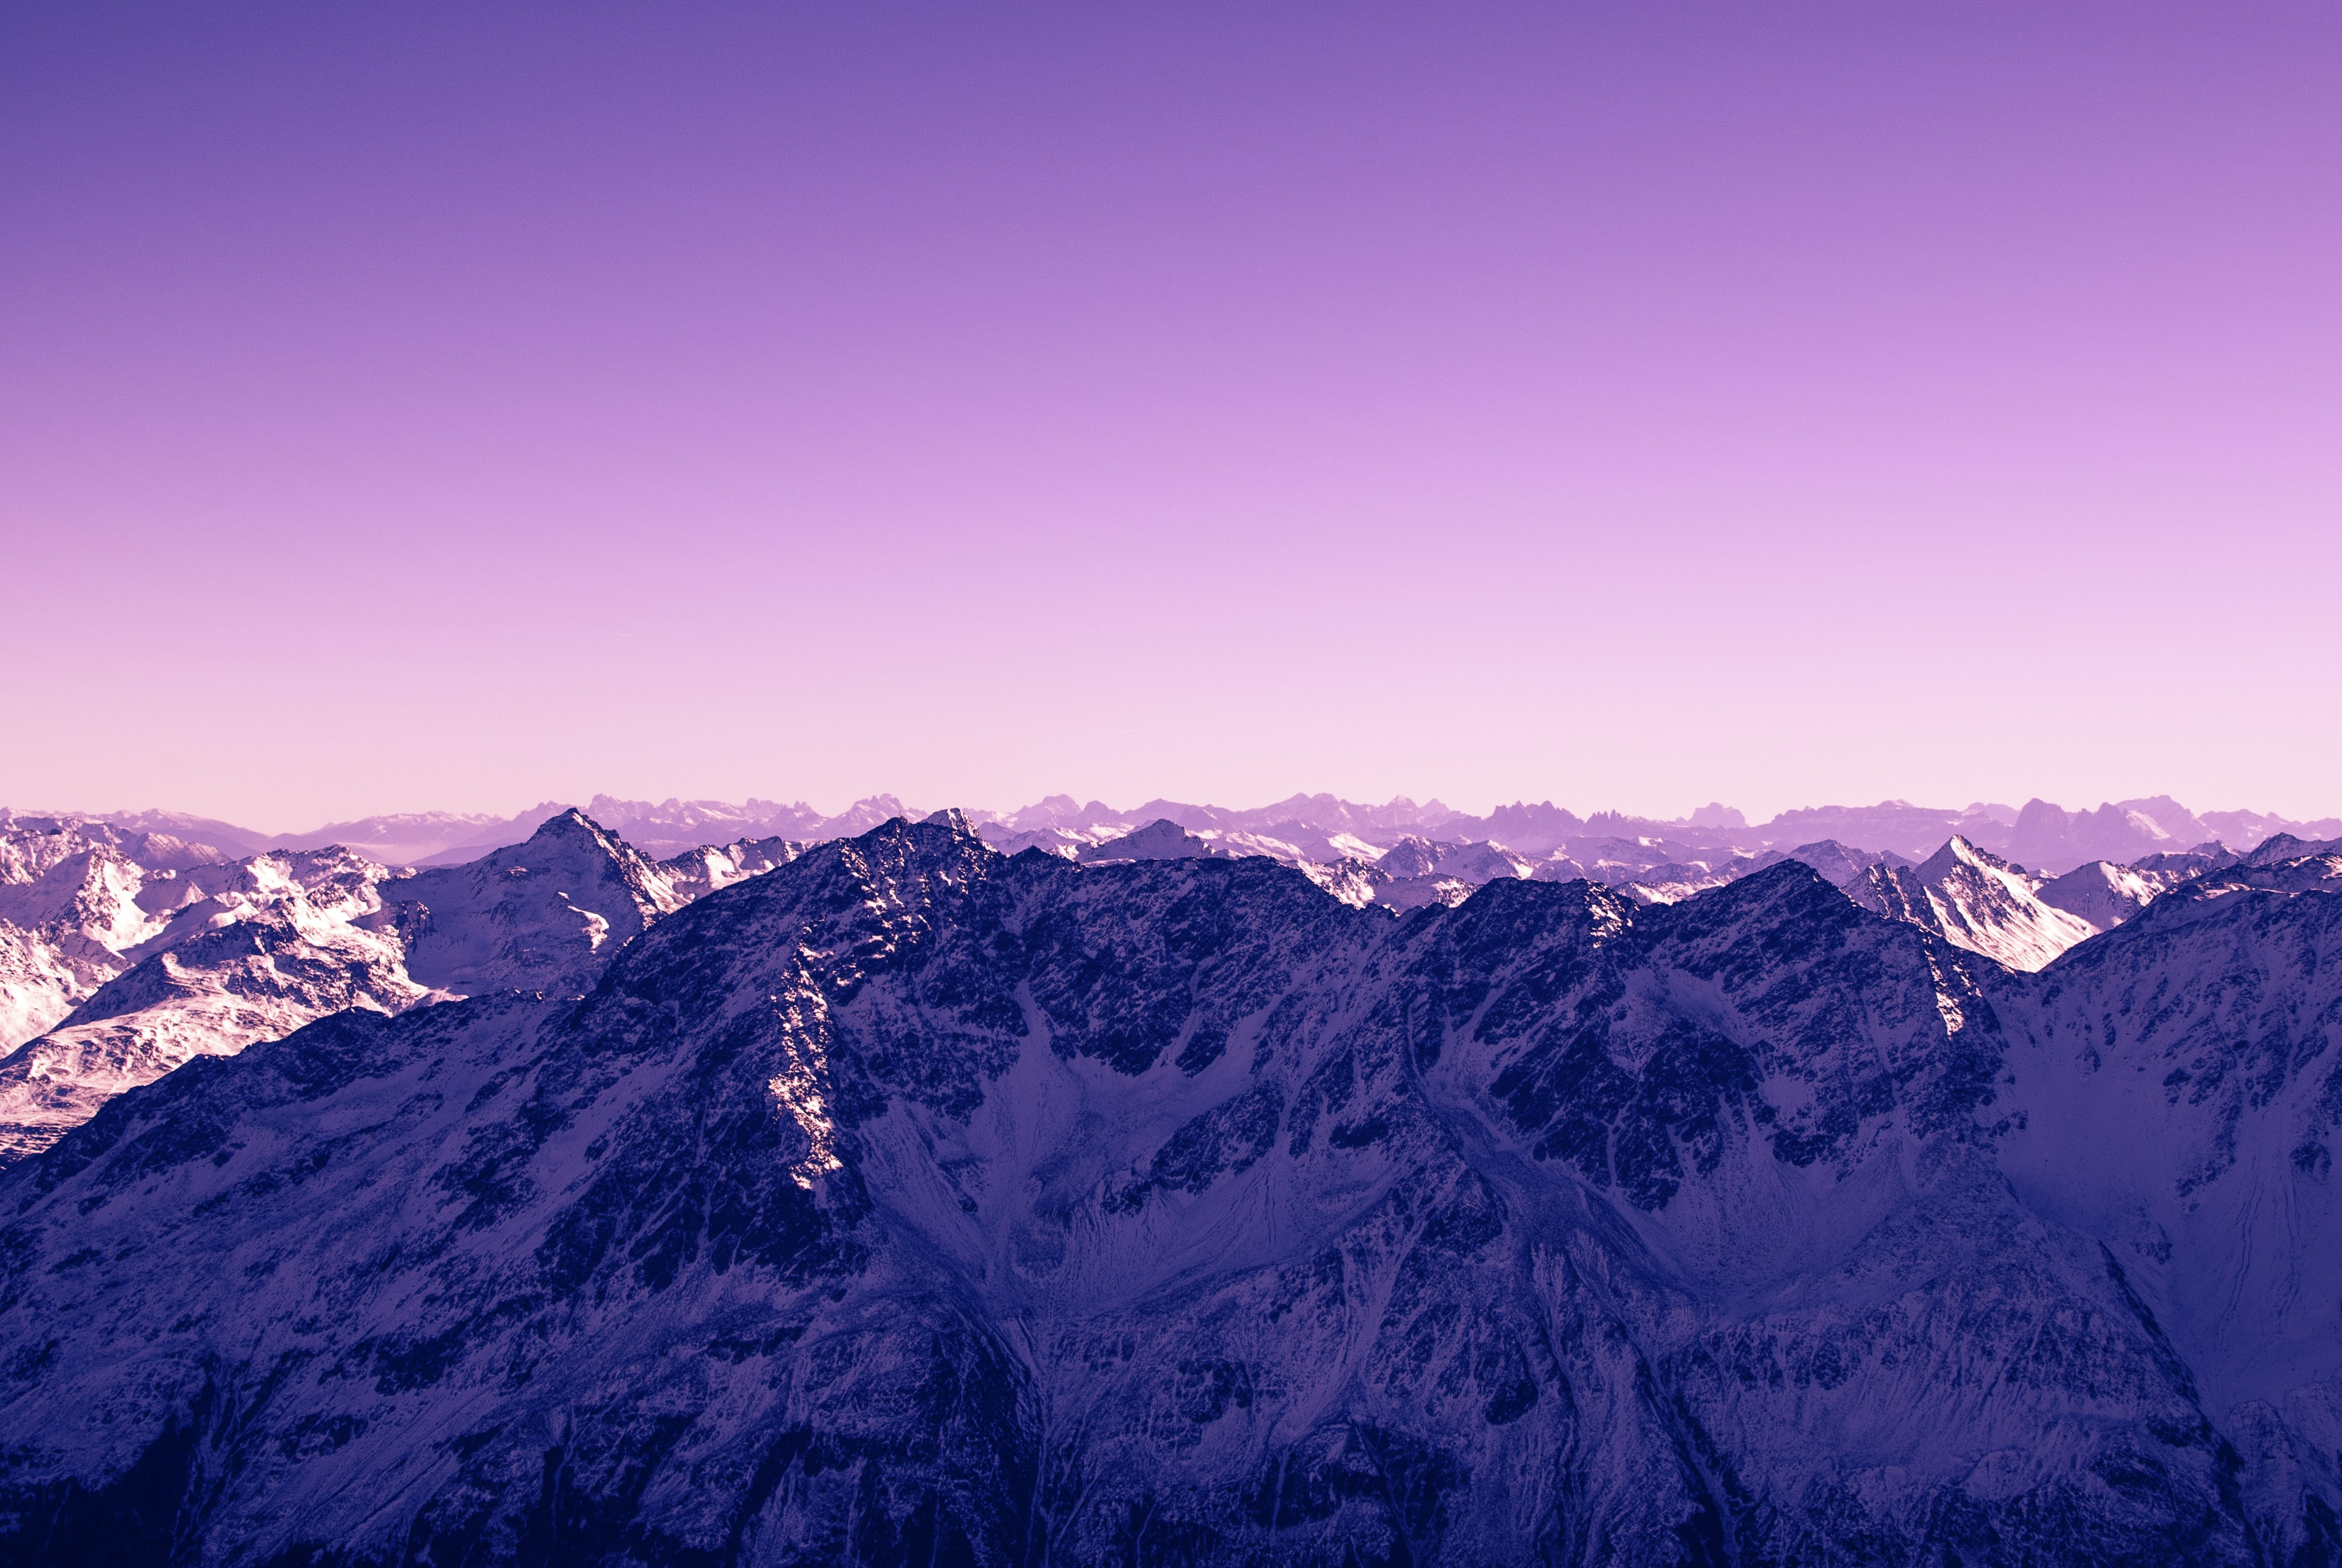 A pink-hued sky over tall snow-capped mountains in Austria